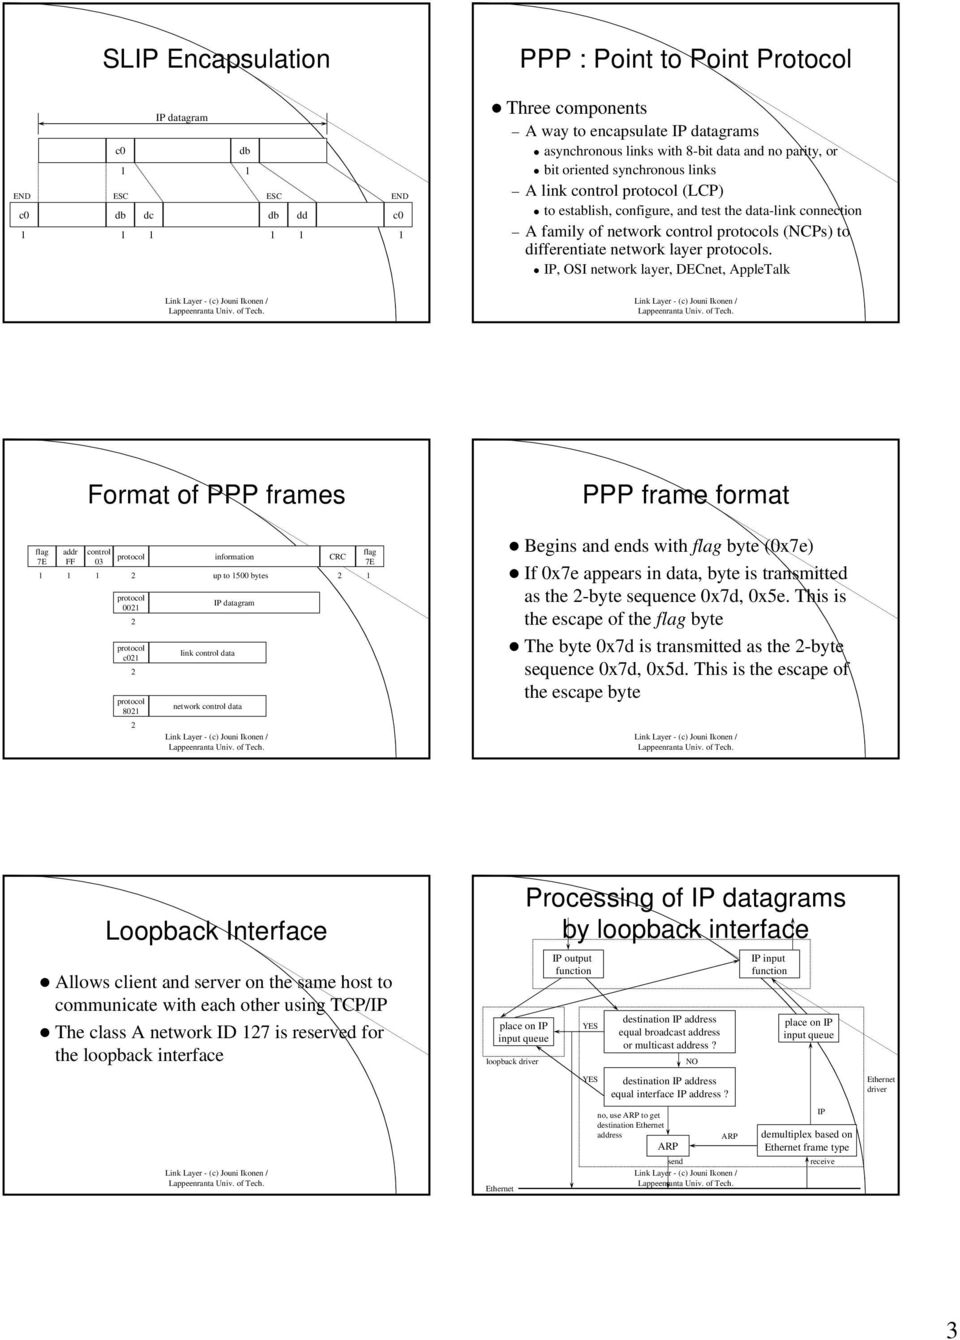 differentiate network layer protocols.